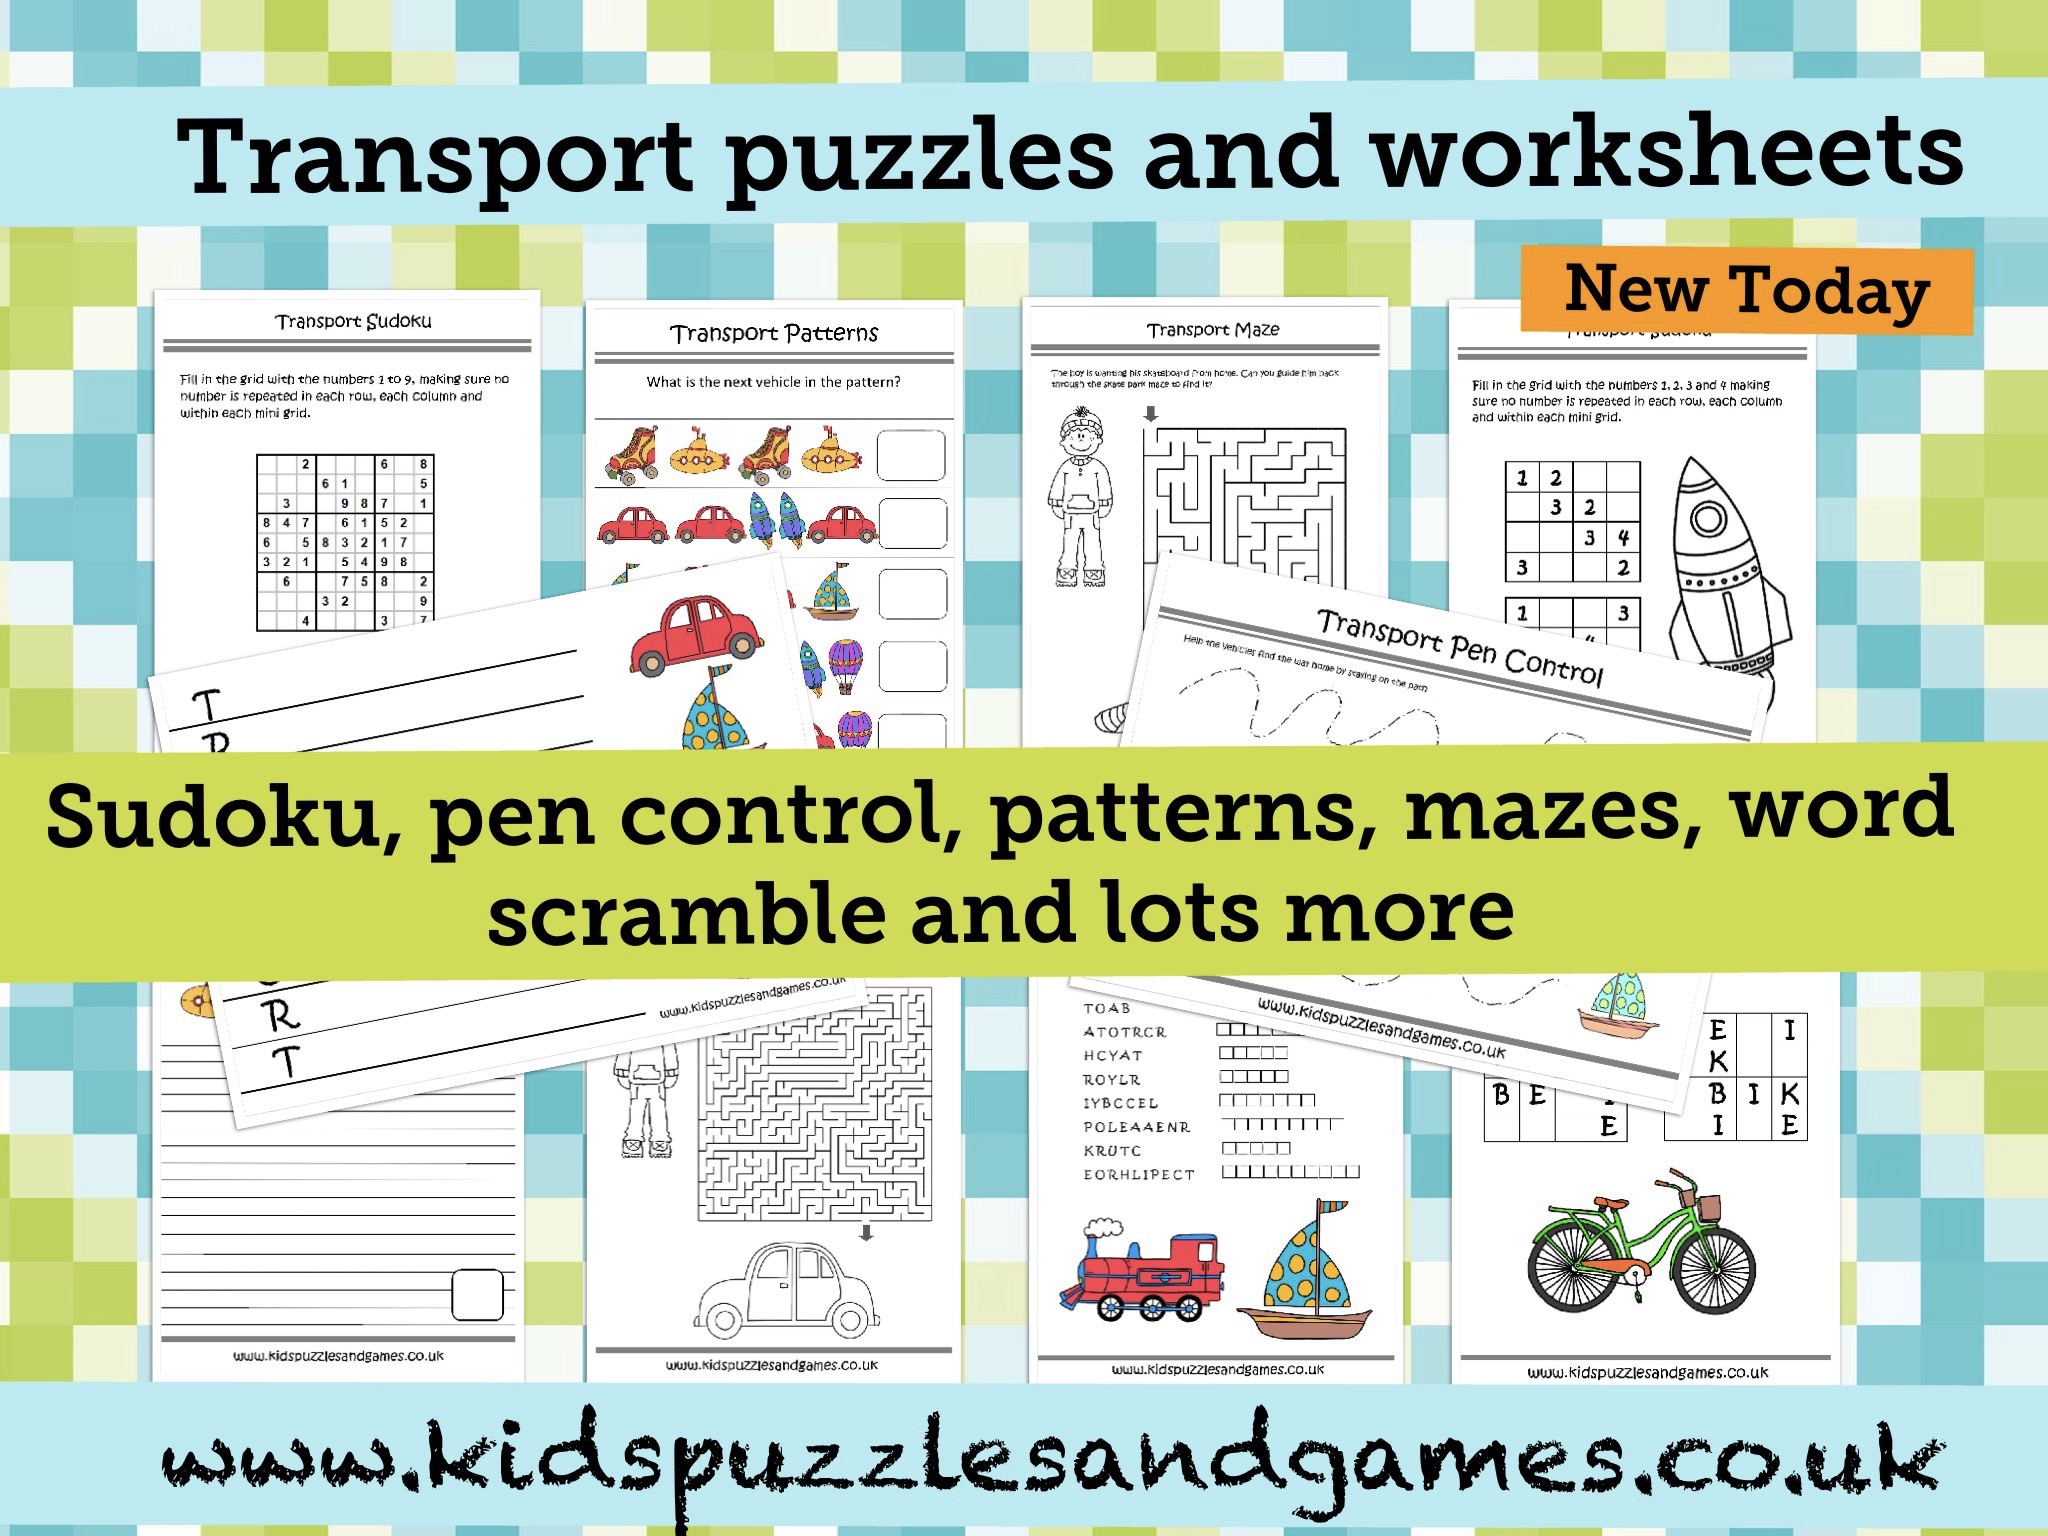 Welcome To Kids Puzzles And Games - Printable Puzzles For 5 Year Olds